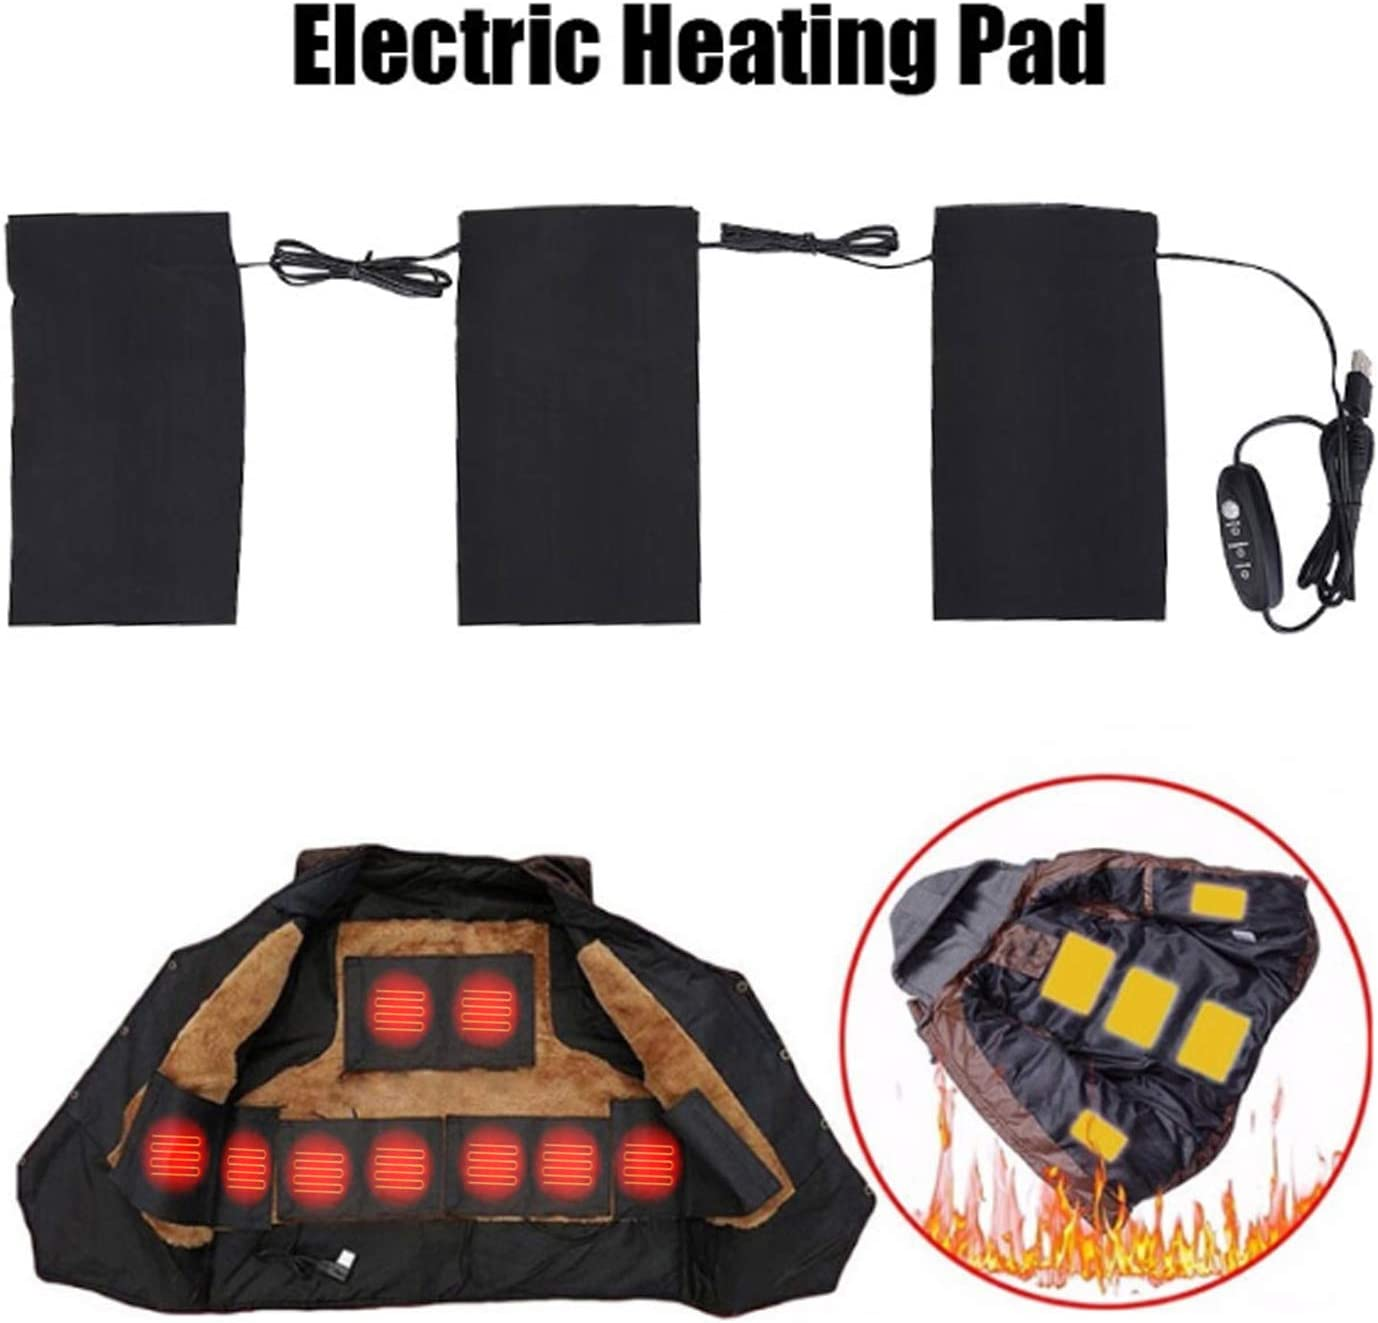 5V 2A Electric USB Clothes Heating Pad, Electric Heated Hot Wrap for Heat Therapy on Back, Knee, Shoulder, Neck Pain, Period Menstrual Cramps, Also for Outdoor Warm Keeping